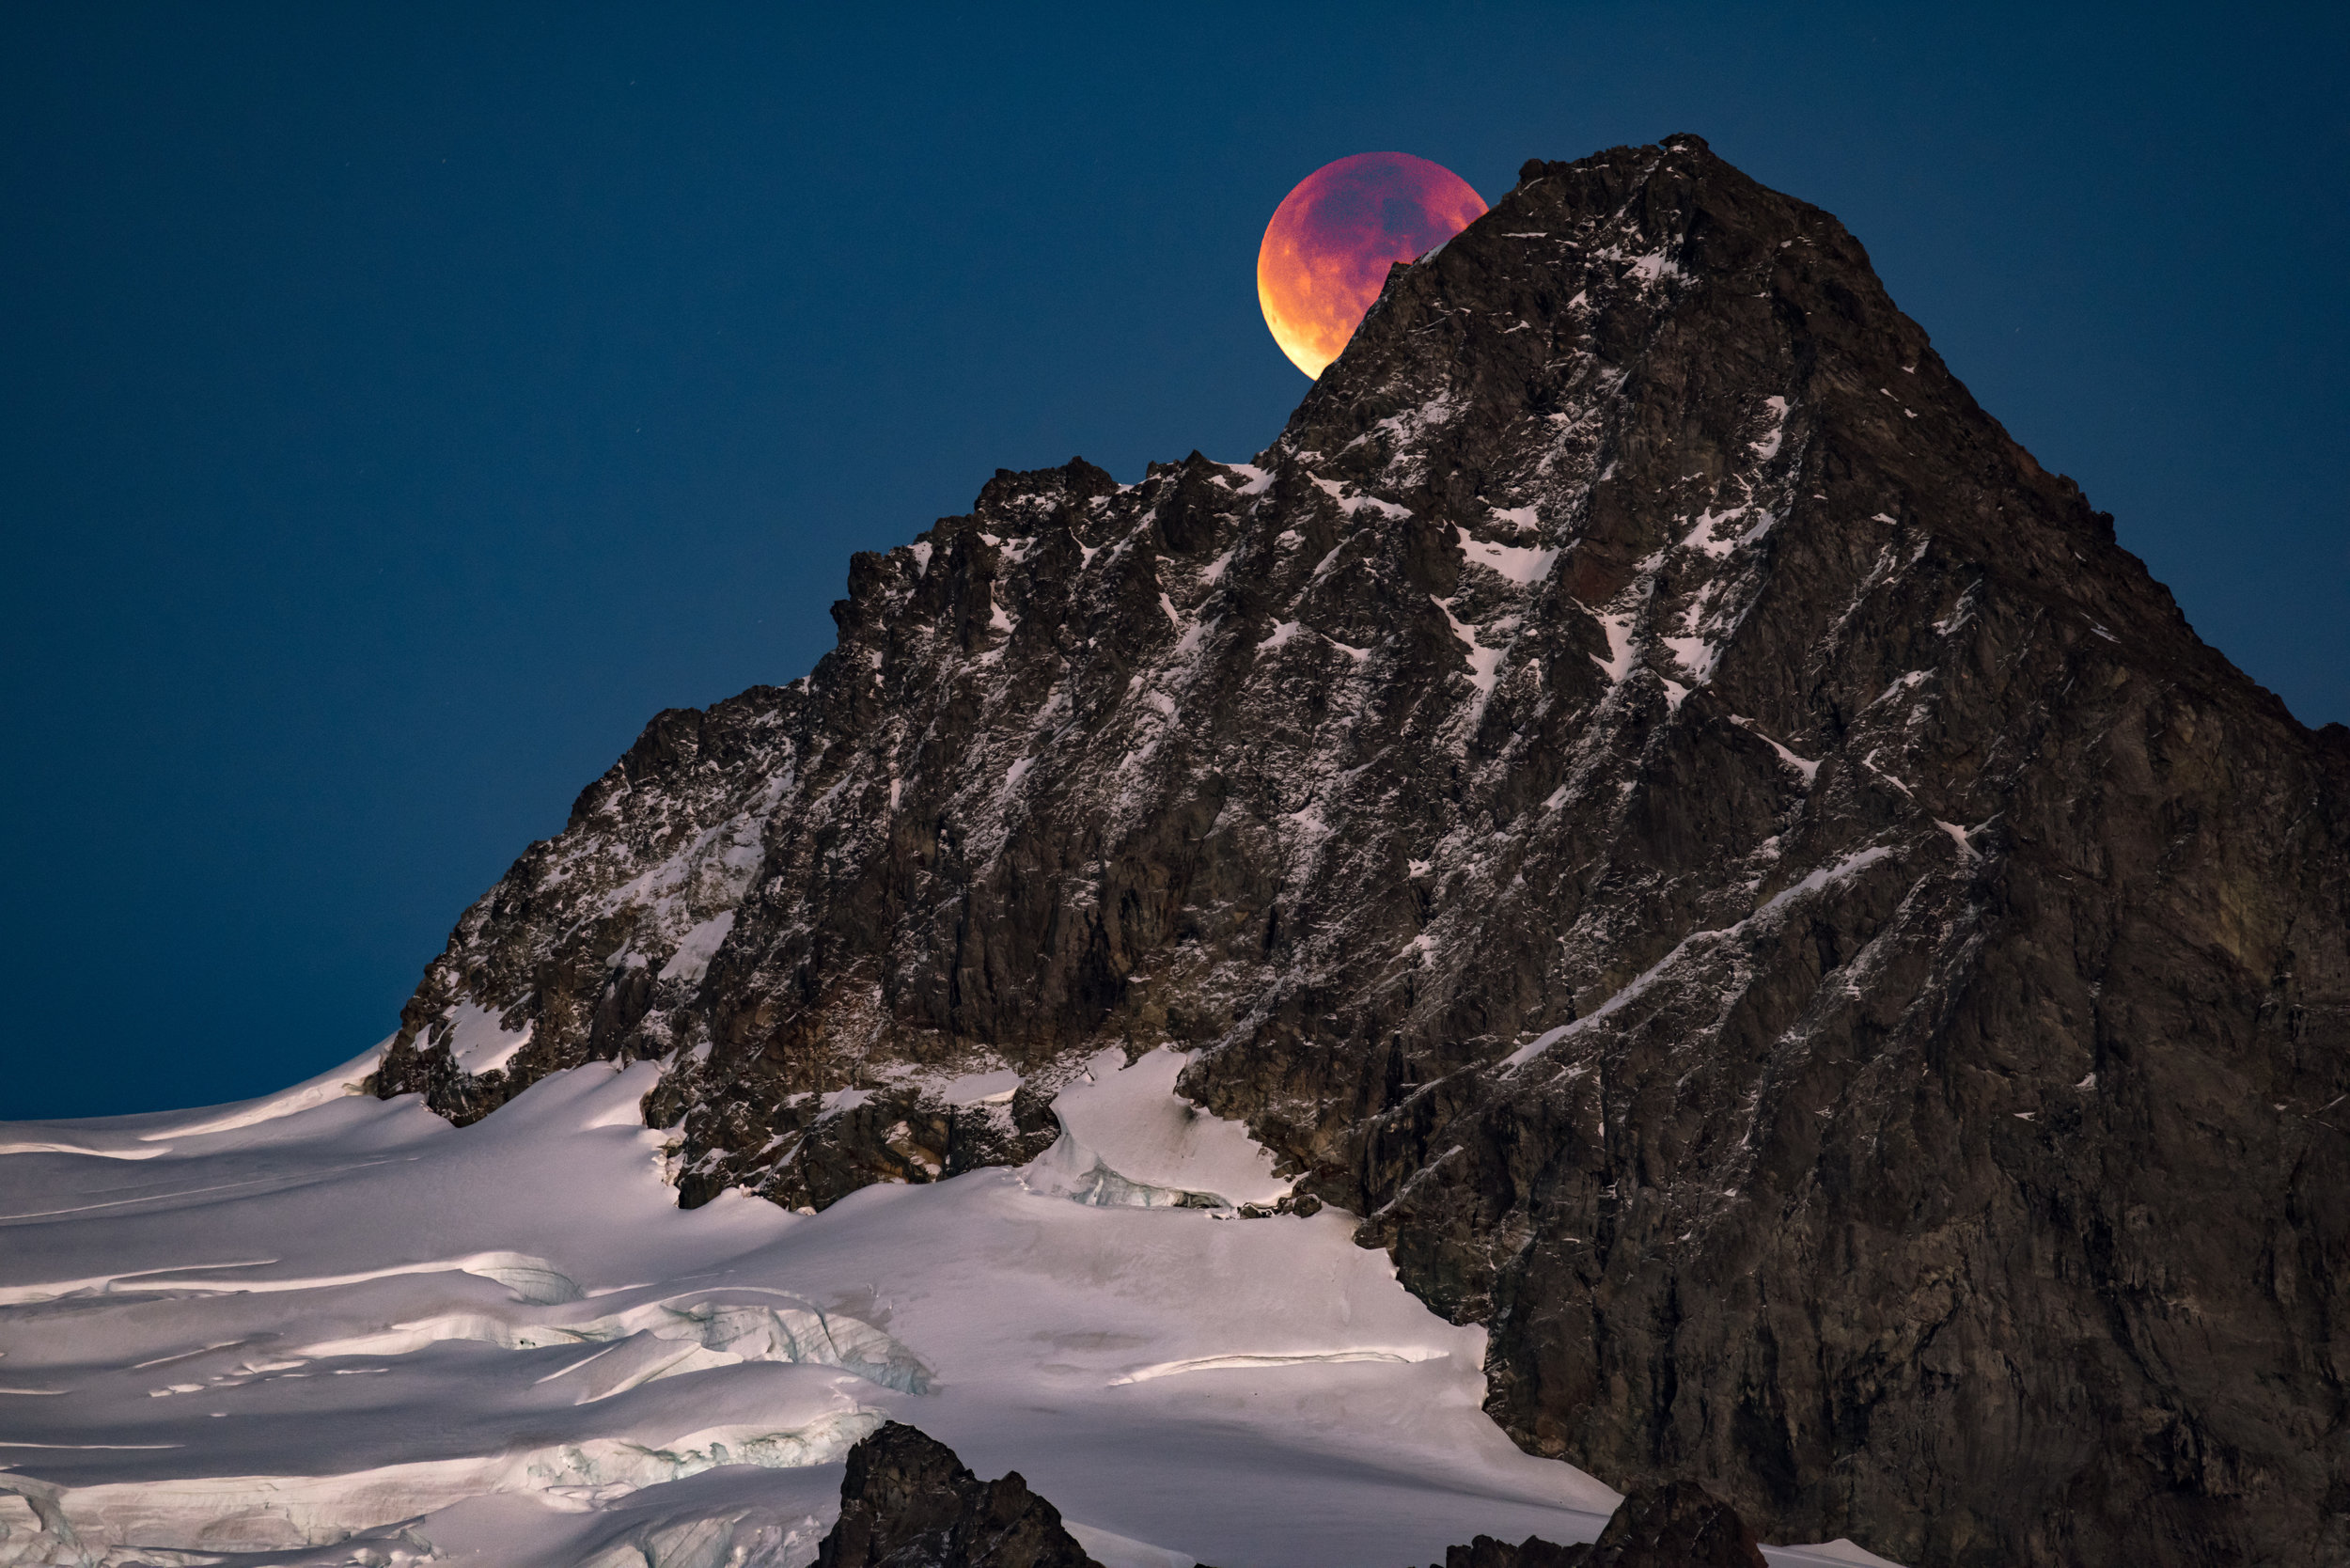 Figure 4: Super Harvest Blood Moon rising over Mount Shuksan, shot at 400mm.